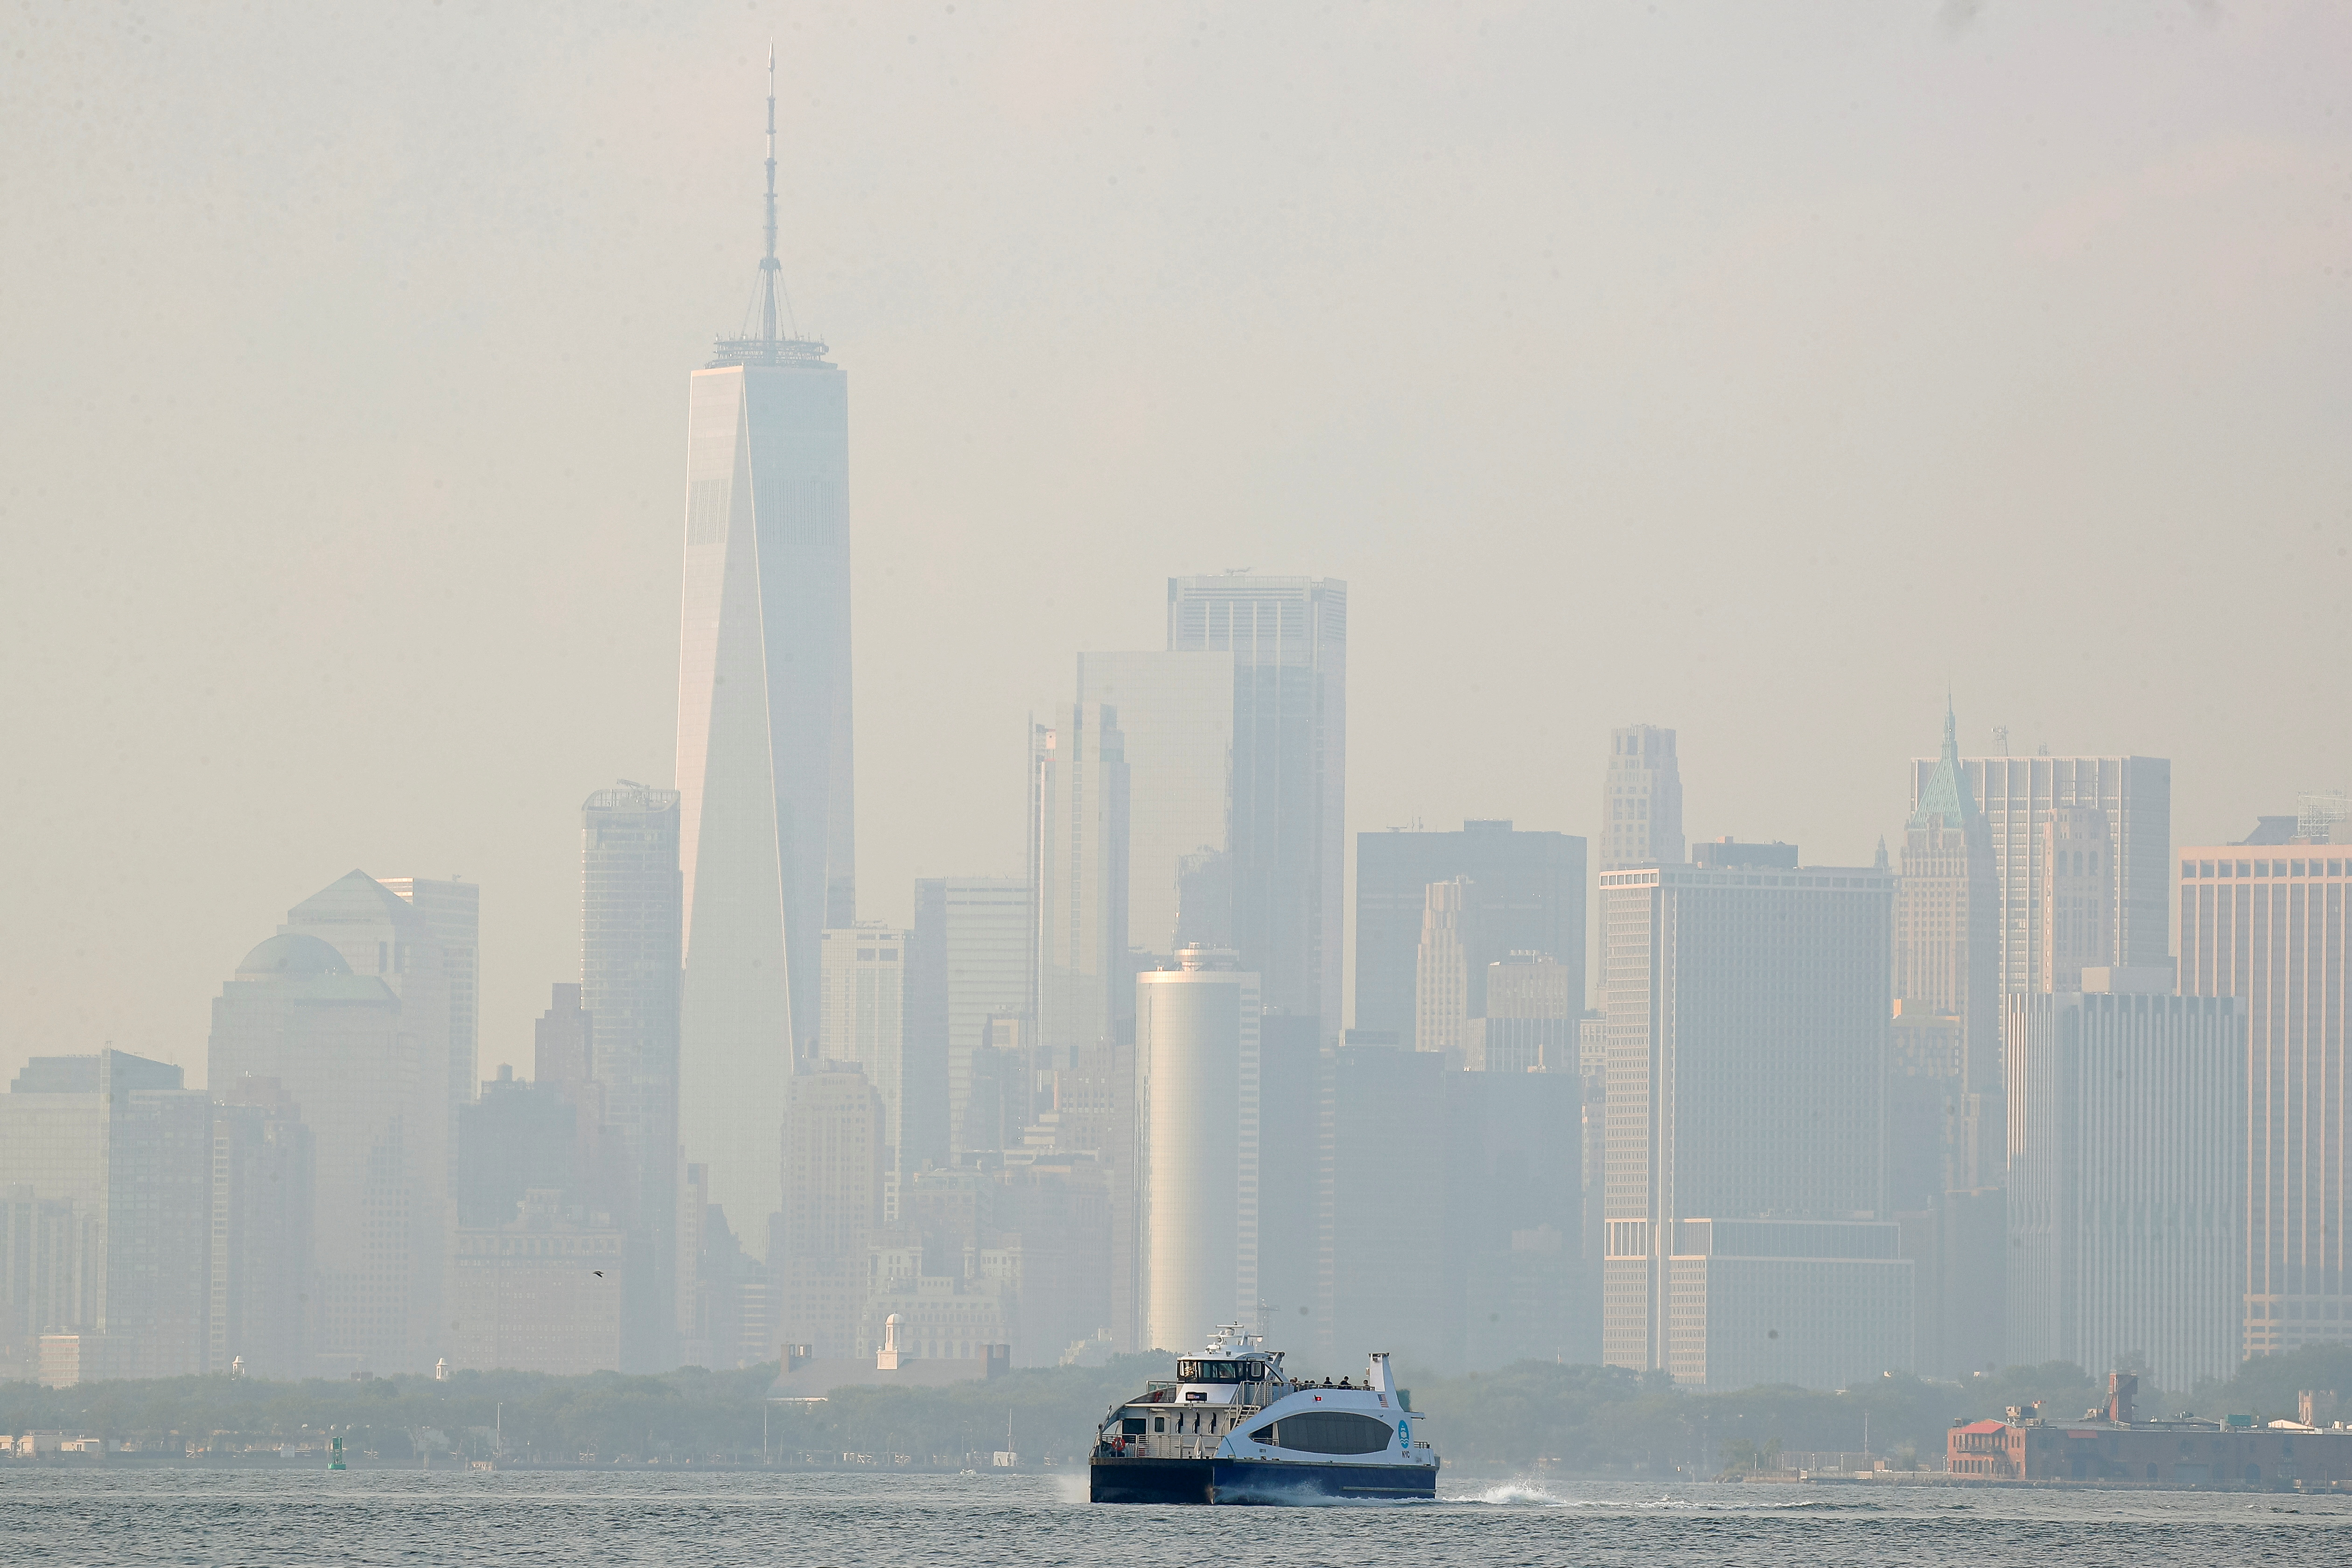 The lower Manhattan skyline is seen through a cover of wildfire smoke as a NYC Ferry makes its way through the Upper Bay as seen from Brooklyn, New York, U.S., July 21, 2021.  REUTERS/Brendan McDermid